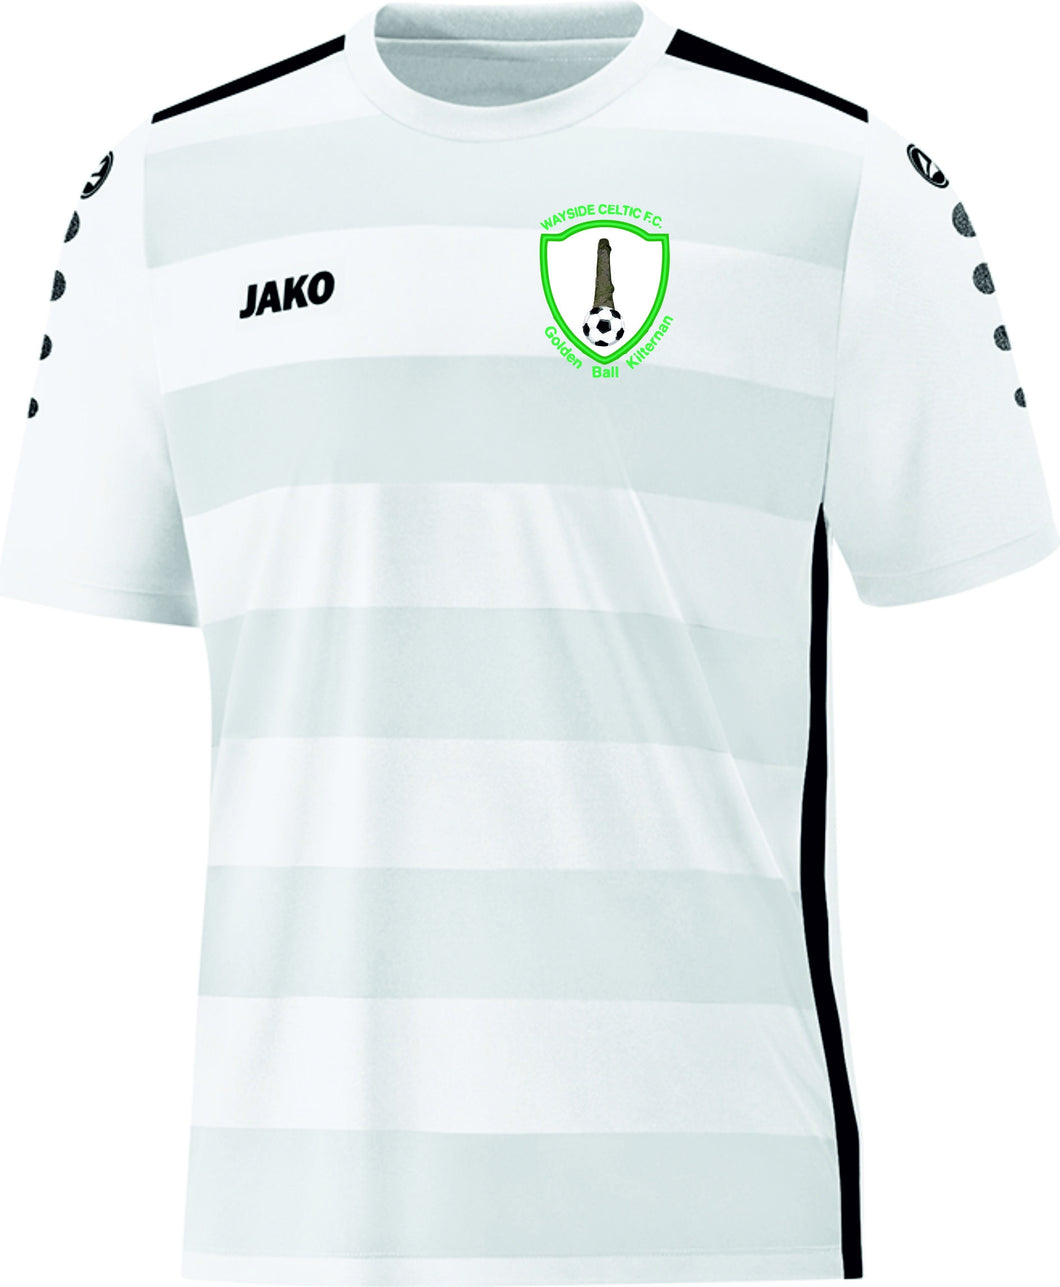 ADULT JAKO WAYSIDE CELTIC AWAY REPLICA JERSEY WC4205A